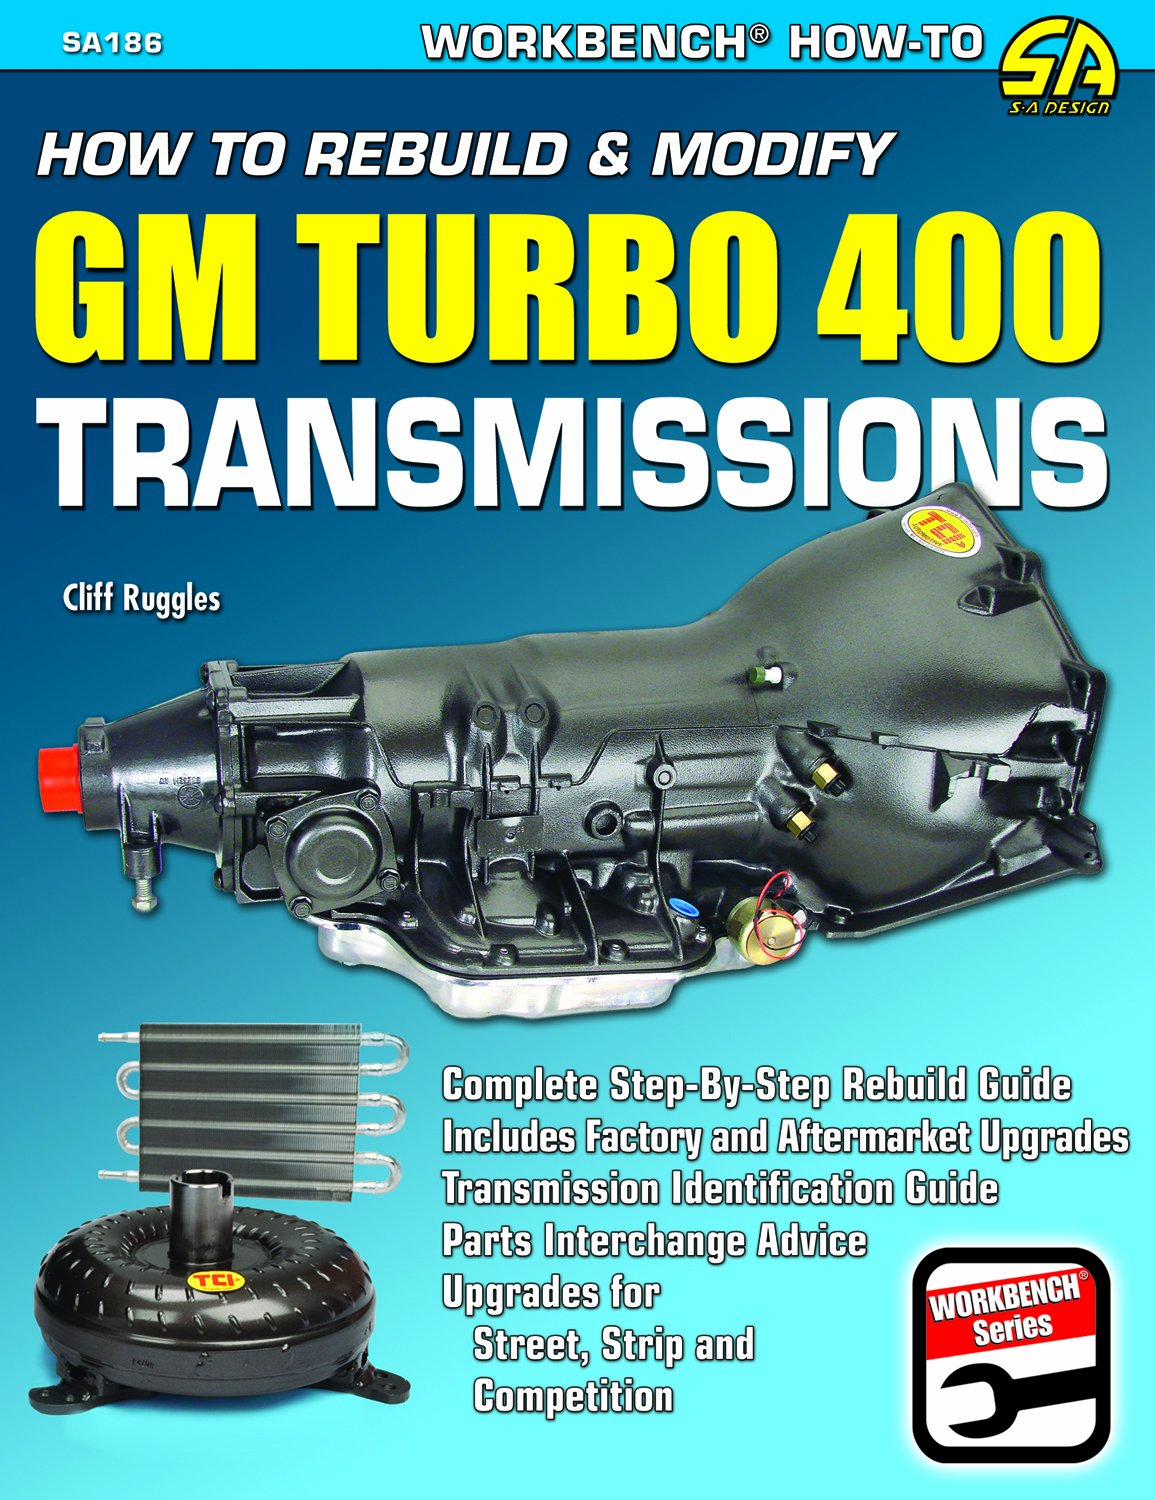 Image OfHow To Rebuild & Modify GM Turbo 400 Transmissions (S-A Design Workbench Series)